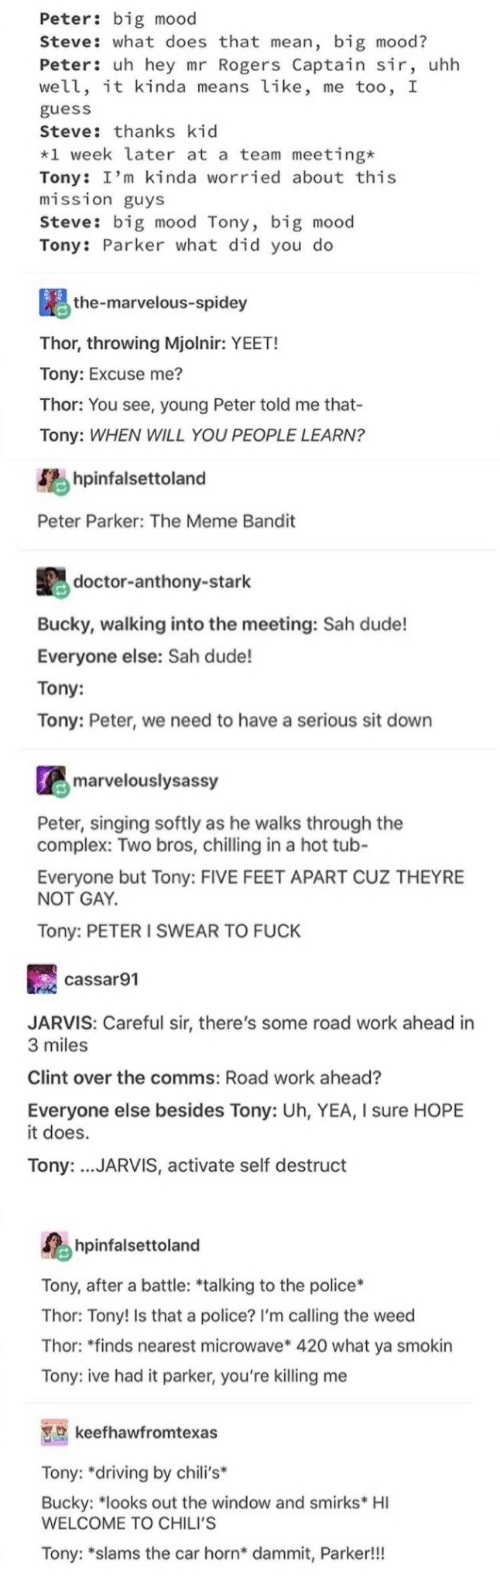 """Chilis, Complex, and Doctor: Peter: big mood  Steve: what does that mean, big mood?  Peter: uh hey mr Rogers Captain sir, uhh  well, it kinda means like, me too, I  guess  Steve: thanks kid  *1 week later at a team meeting*  Tony: I'm kinda worried about this  mission guys  Steve: big mood Tony, big mood  Tony: Parker what did you do  the-marvelous-spidey  Thor, throwing Mjolnir: YEET!  Tony: Excuse me?  Thor: You see, young Peter told me that-  Tony: WHEN WILL YOU PEOPLE LEARN?  hpinfalsettoland  Peter Parker: The Meme Bandit  doctor-anthony-stark  Bucky, walking into the meeting: Sah dude!  Everyone else: Sah dude!  Tony:  Tony: Peter, we need to have a serious sit down  marvelouslysassy  Peter, singing softly as he walks through the  complex: Two bros, chilling in a hot tub-  Everyone but Tony: FIVE FEET APART CUZ THEYRE  NOT GAY  Tony: PETER I SWEAR TO FUCK  cassar91  JARVIS: Careful sir, there's some road work ahead in  3 miles  Clint over the comms: Road work ahead?  Everyone else besides Tony: Uh, YEA, I sure HOPE  it does.  Tony: .JARVIS, activate self destruct  hpinfalsettoland  Tony, after a battle: *talking to the police*  Thor: Tony! Is that a police? I'm calling the weed  Thor: """"finds nearest microwave* 420 what ya smokin  Tony: ive had it parker, you're killing me  keefhawfromtexas  Tony: """"driving by chili's*  Bucky: """"looks out the window and smirks* HI  WELCOME TO CHILI'S  Tony: """"slams the car horn* dammit, Parker!!!"""